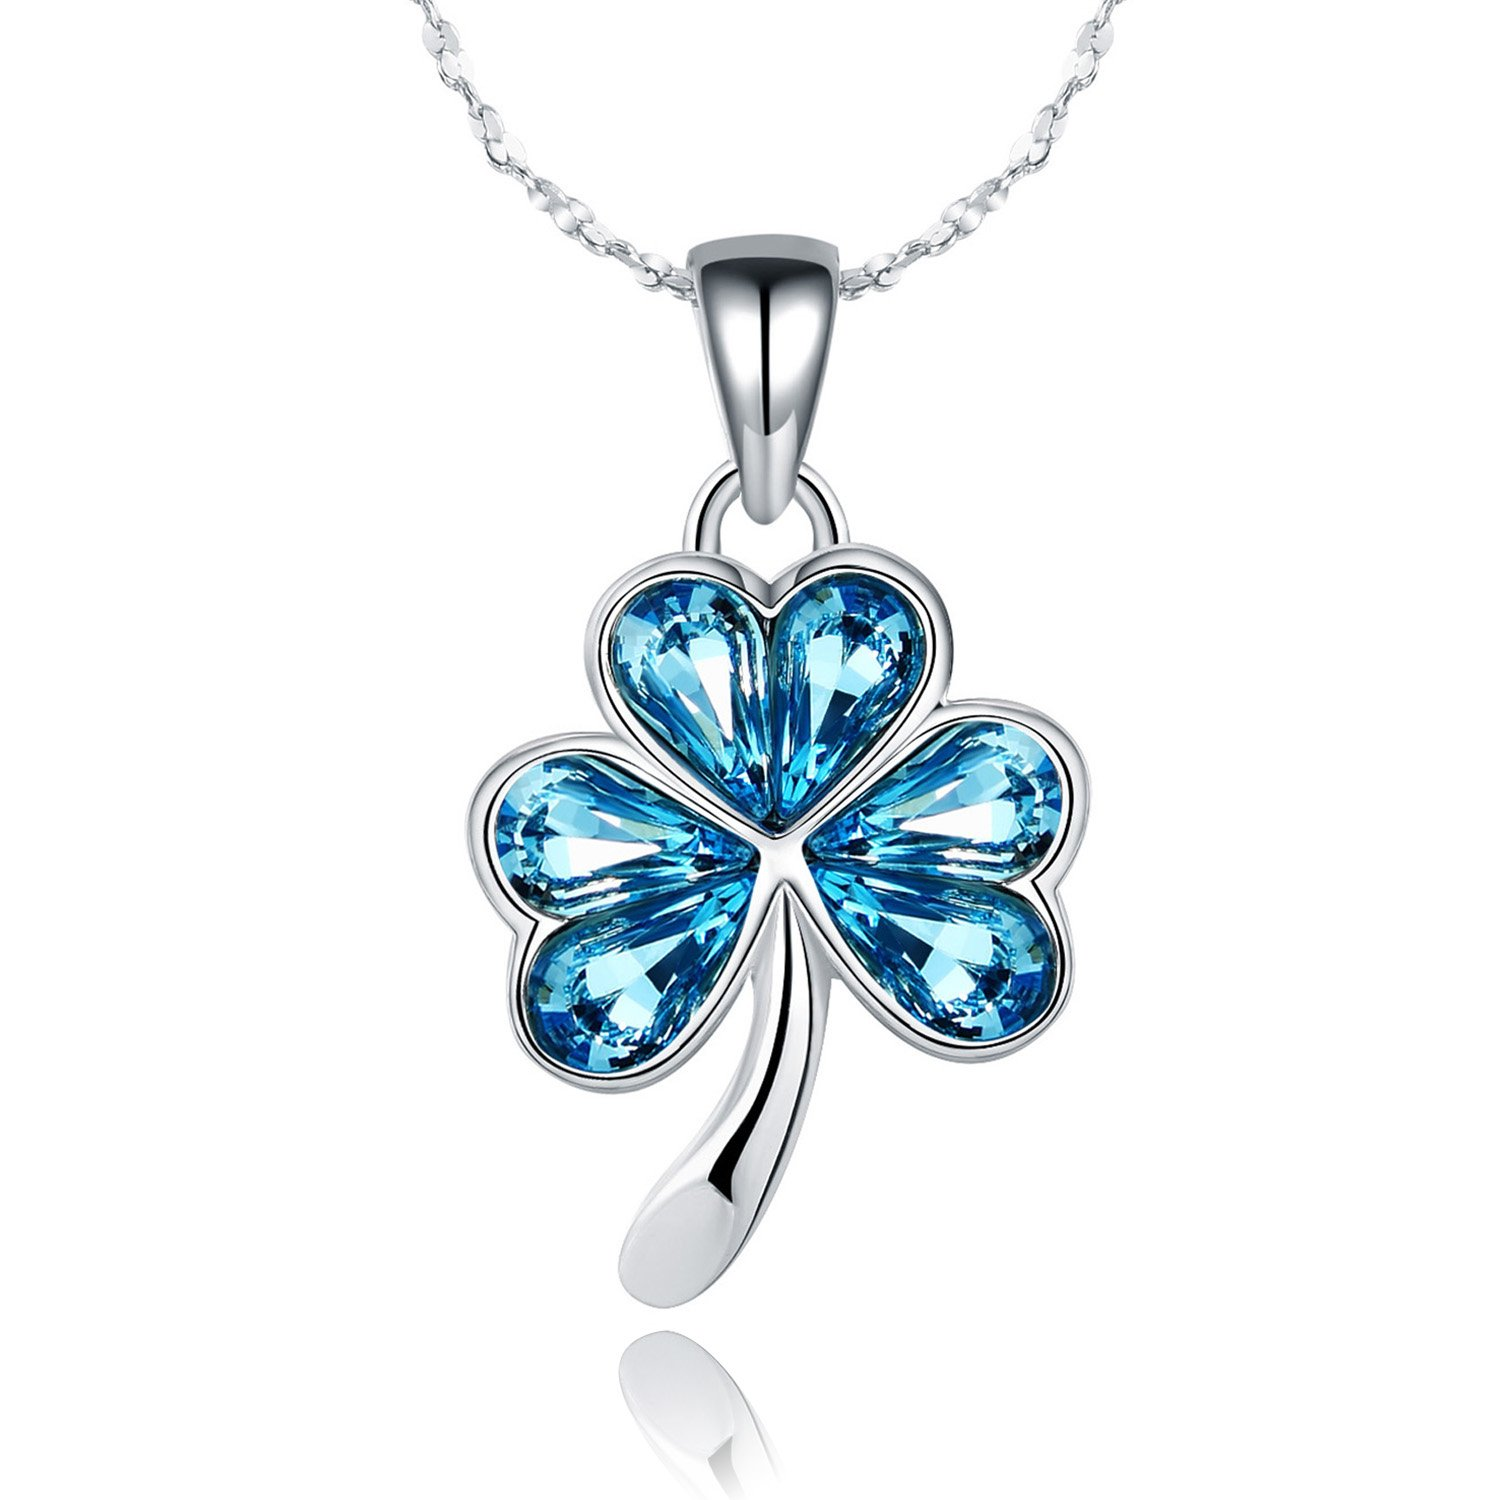 8958ce0f1e243 JCHORNOR Shamrock Four Leaf Clover Heart Shaped Swarovski Elements Crystal  Pendant Necklace, St. Patrick's Day Party Gifts for Teen ...